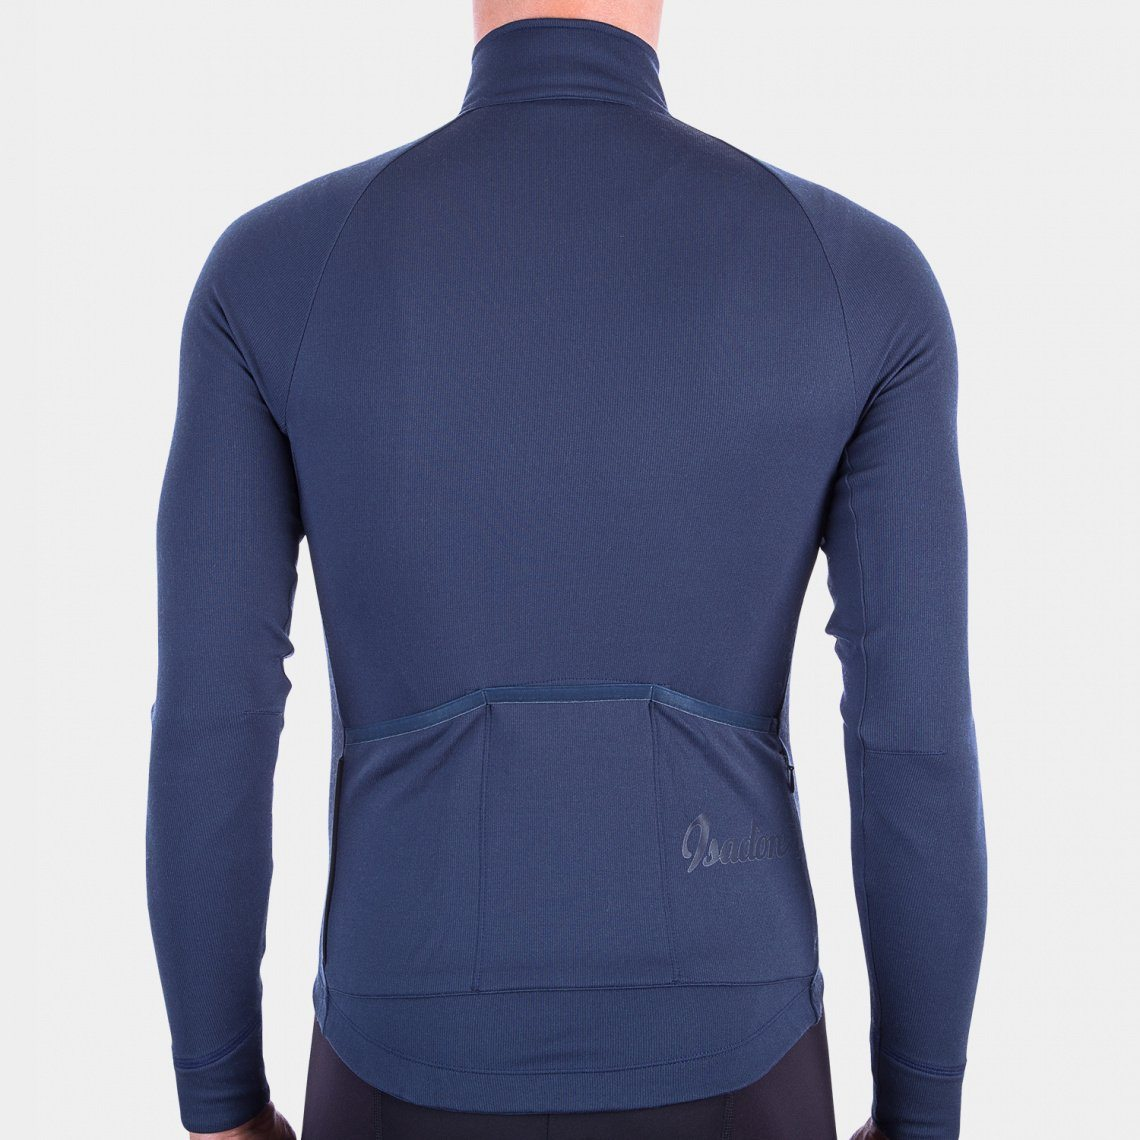 Long Sleeve Cycling Jersey - Indigo Blue Cycling Jersey Isadore